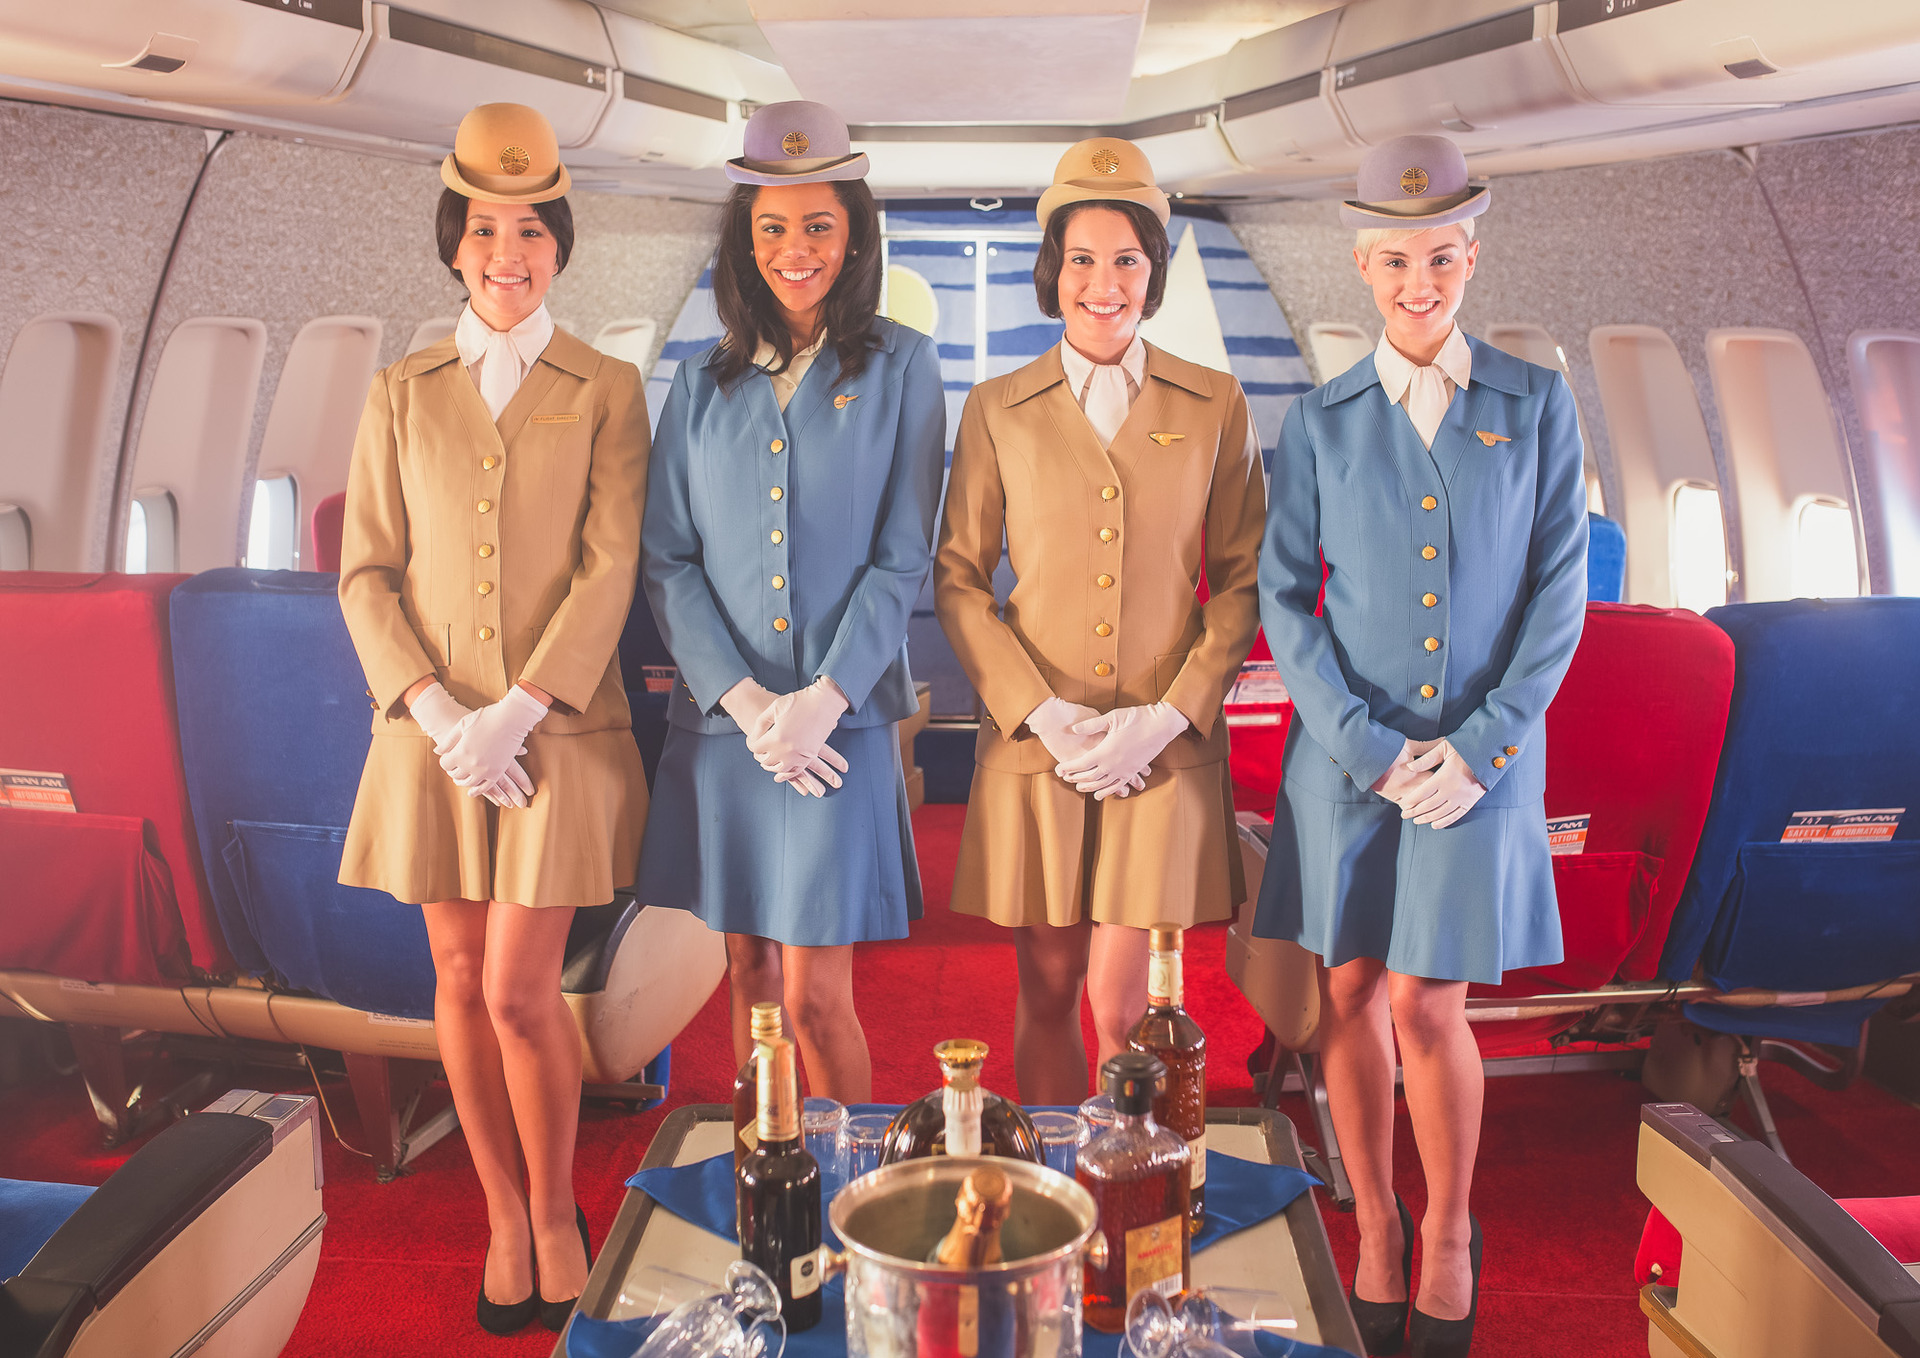 Flight of fancy: Air Hollywood Studio's glamorous Pan Am Experience